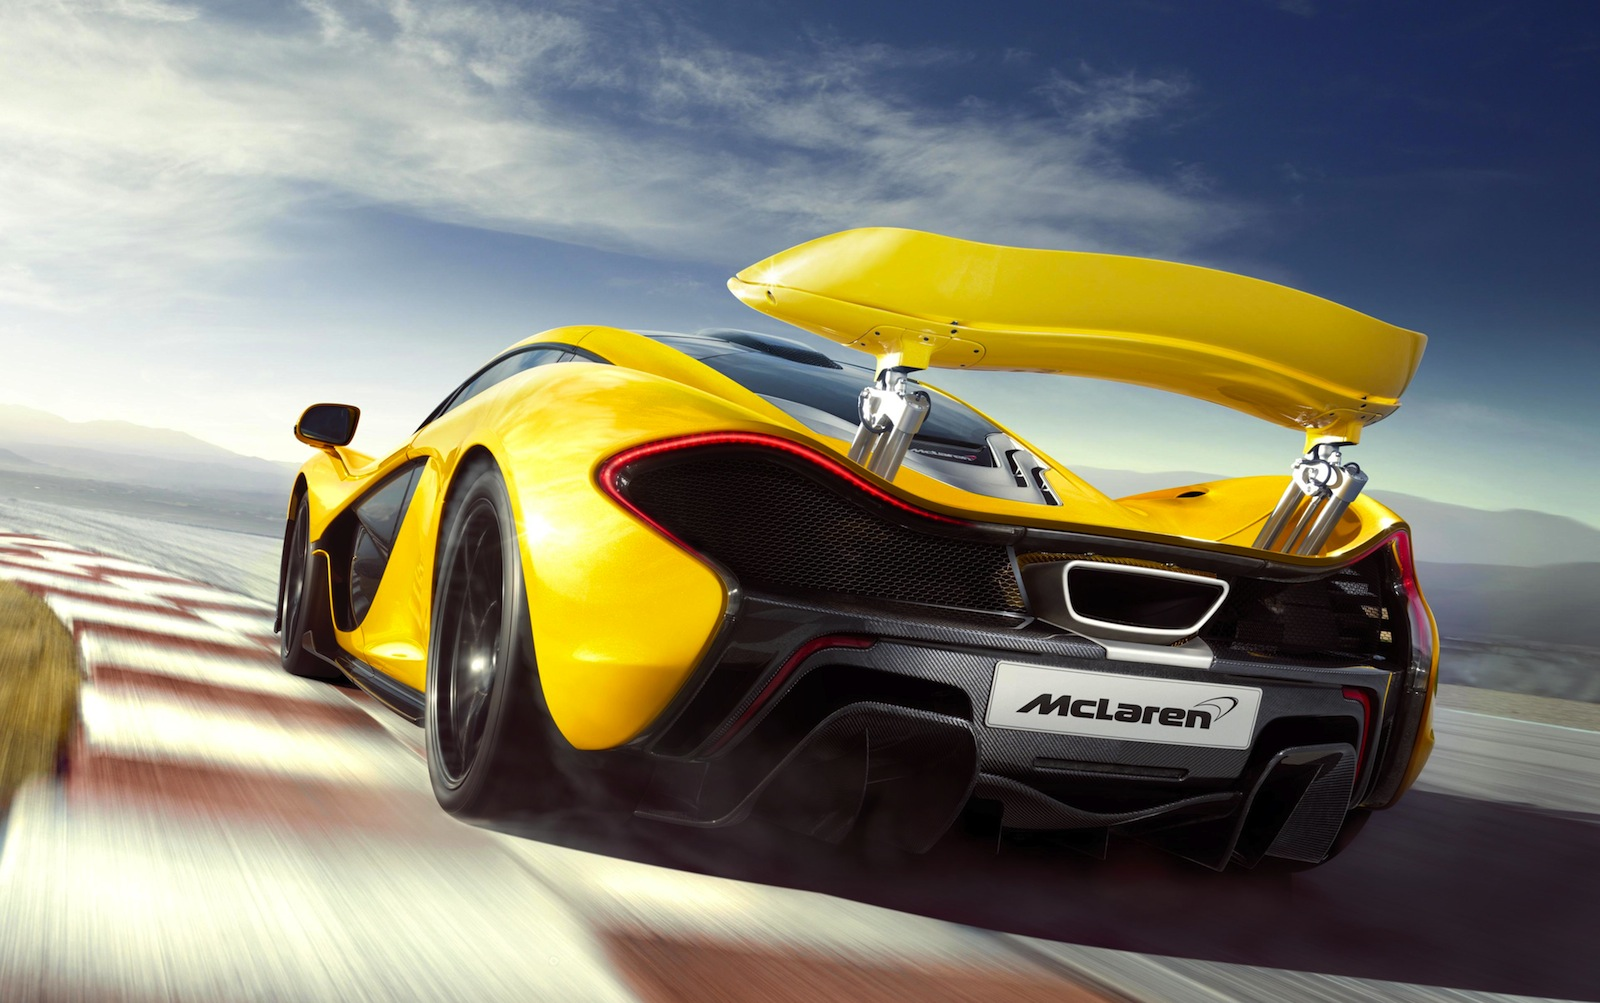 Specificatiile modelului P1 de la Mclaren